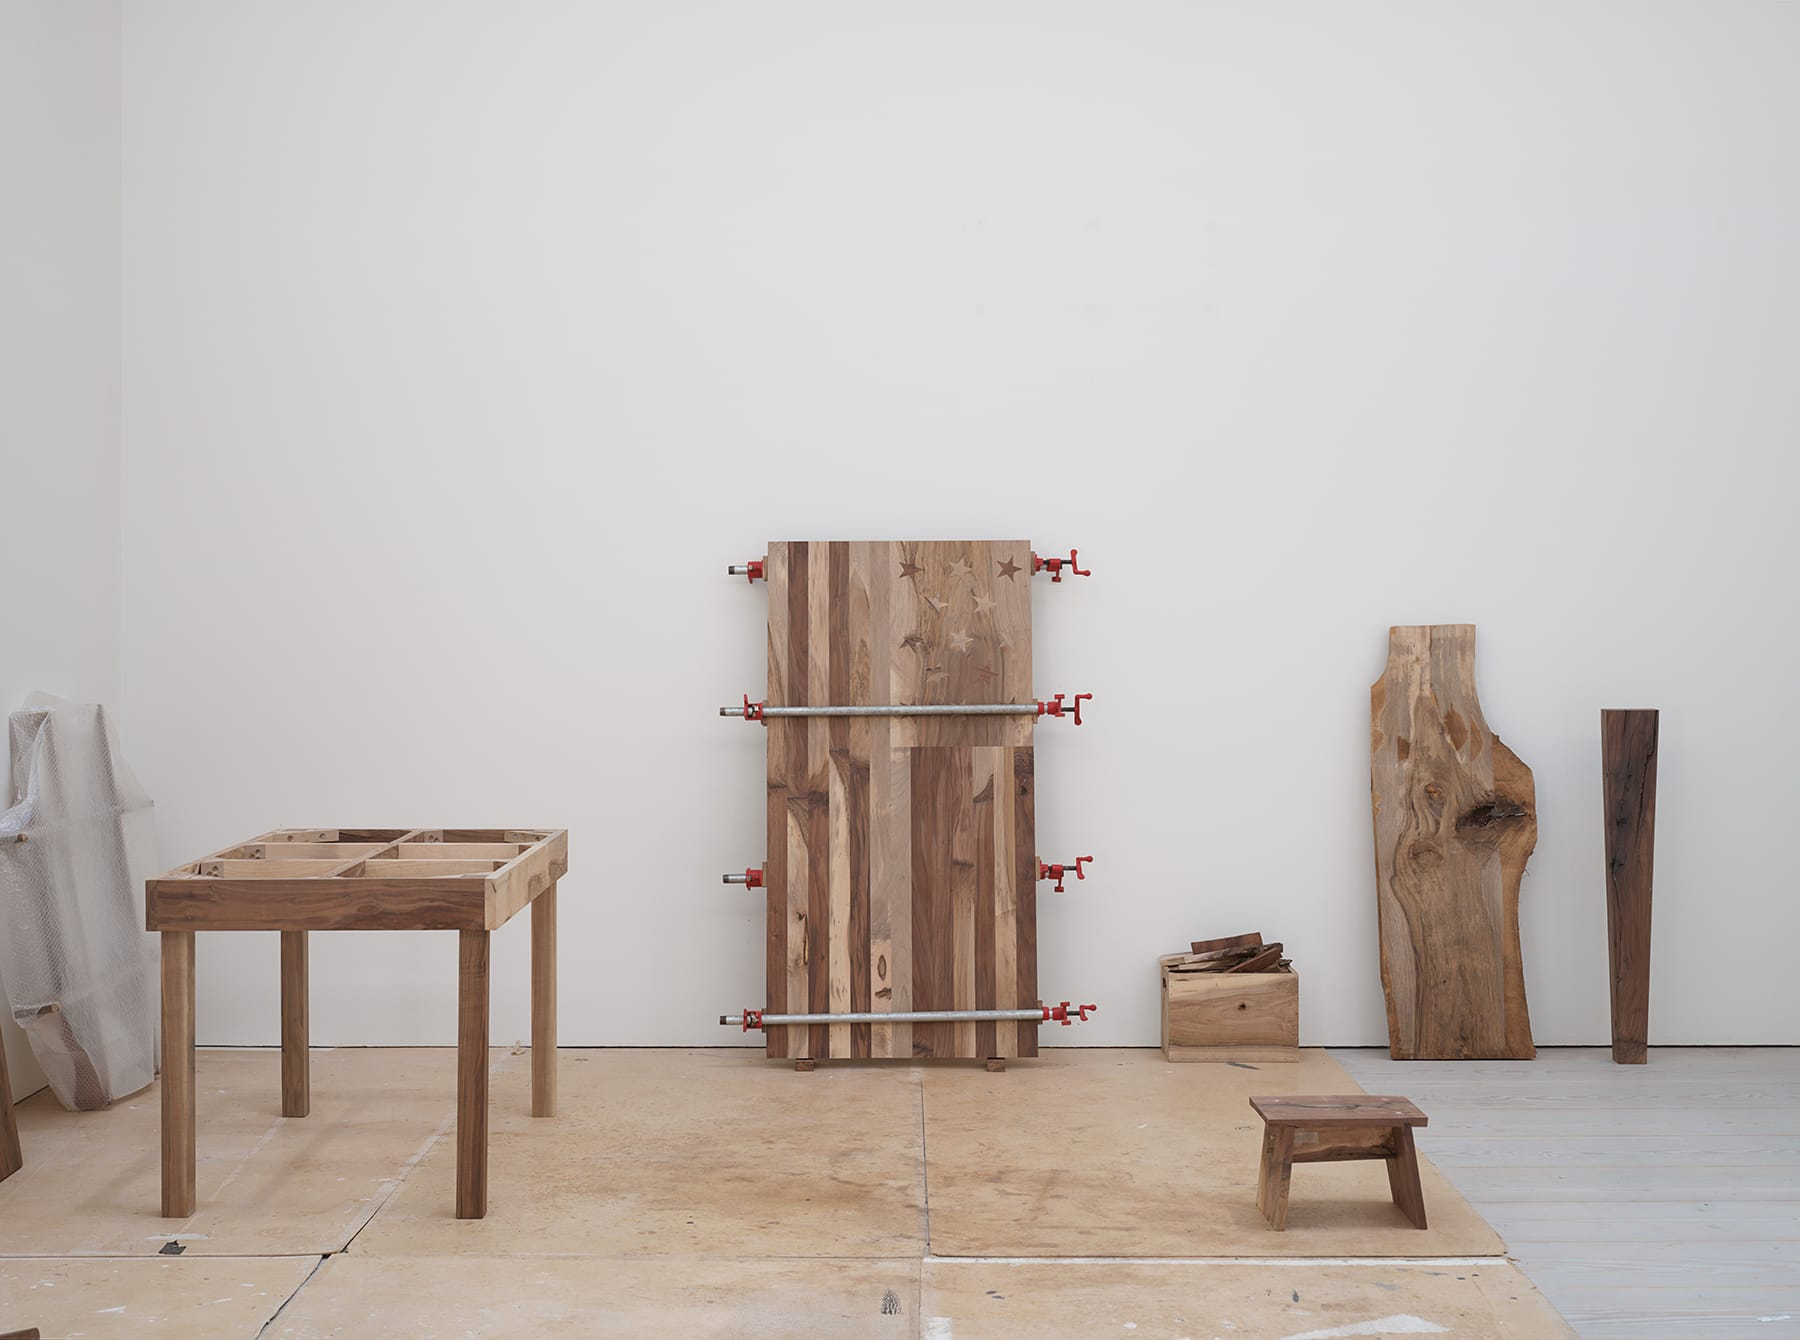 Gallery filled with various wooden furniture, wooden slabs, and a clamped wooden flag sculpture.